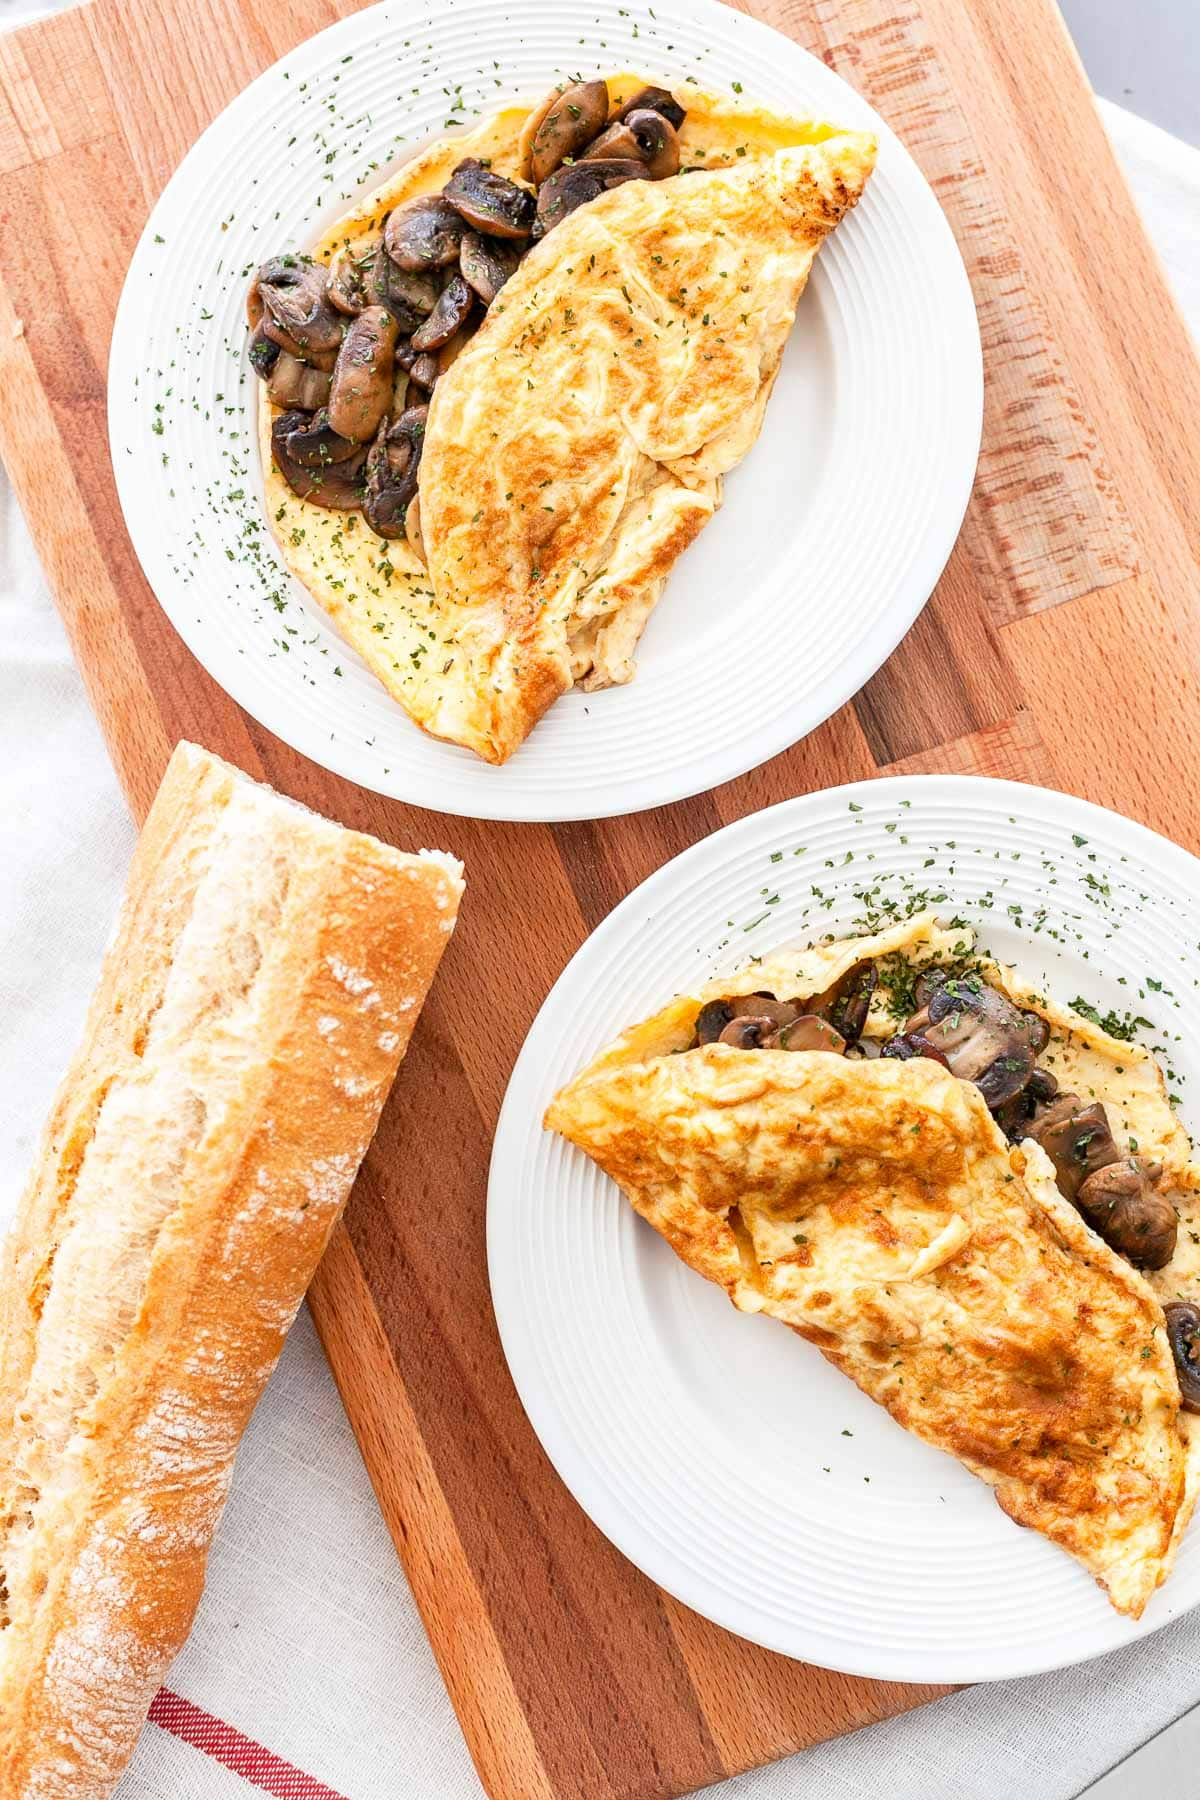 Easy French omelette with mushrooms is a great lunch recipe. Make this great egg recipe for lunch and serve with a baguette or bread. Visit fastfoodbistro.com for the full recipe #fastfoodbistro #omelette #Frenchomelette #eggrecipe #lunchrecipe